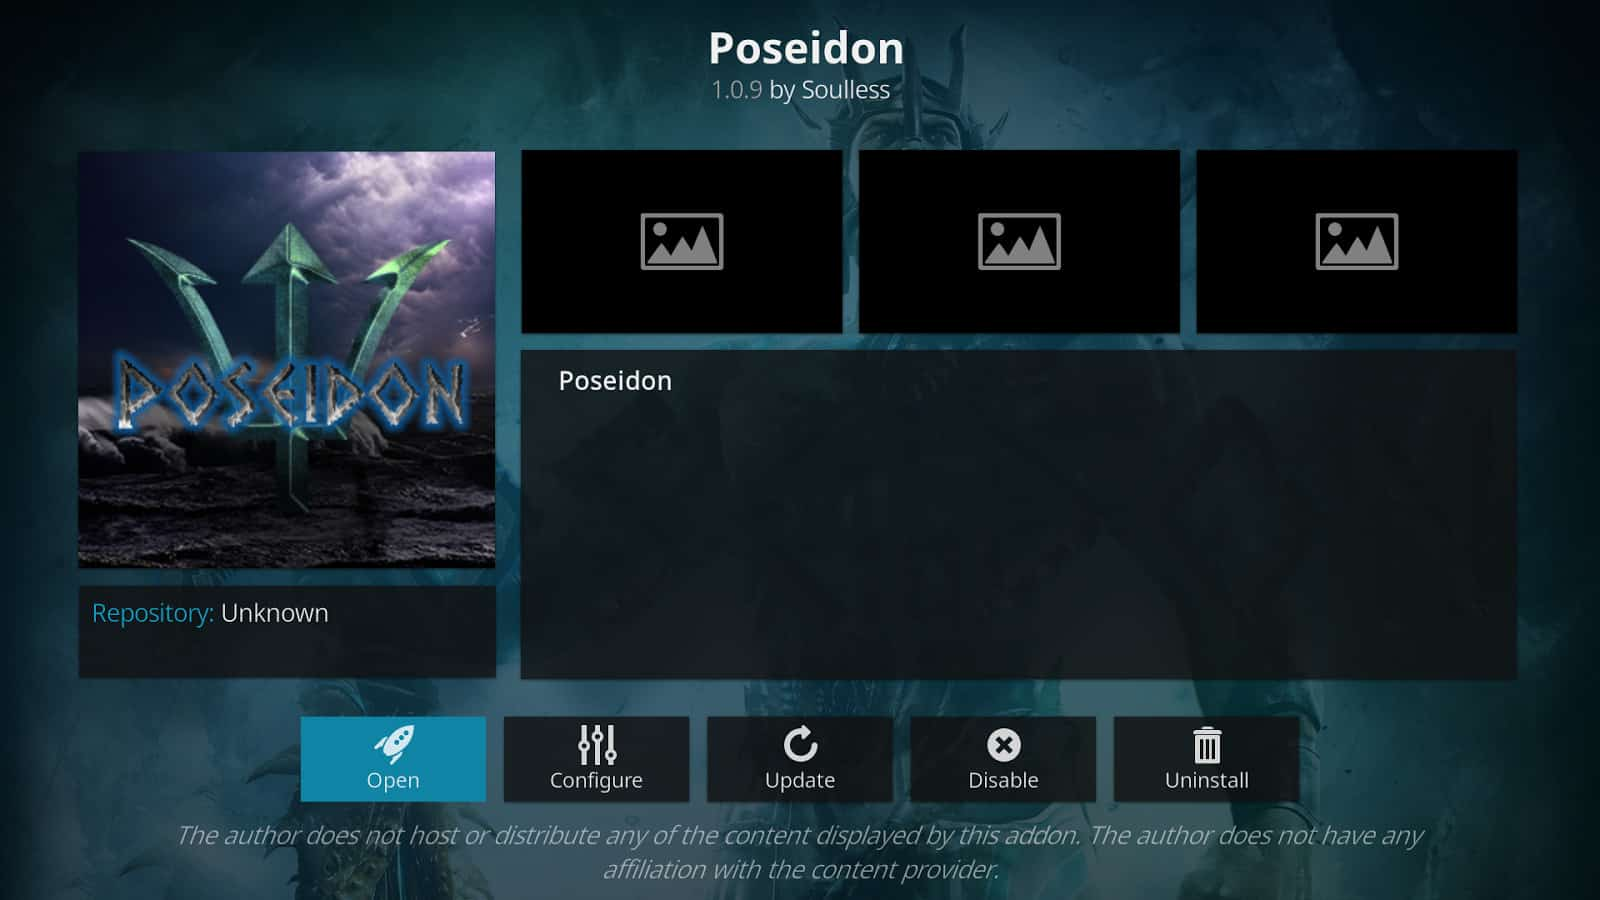 How to Install Poseidon Addon on Kodi 17.6 Krypton